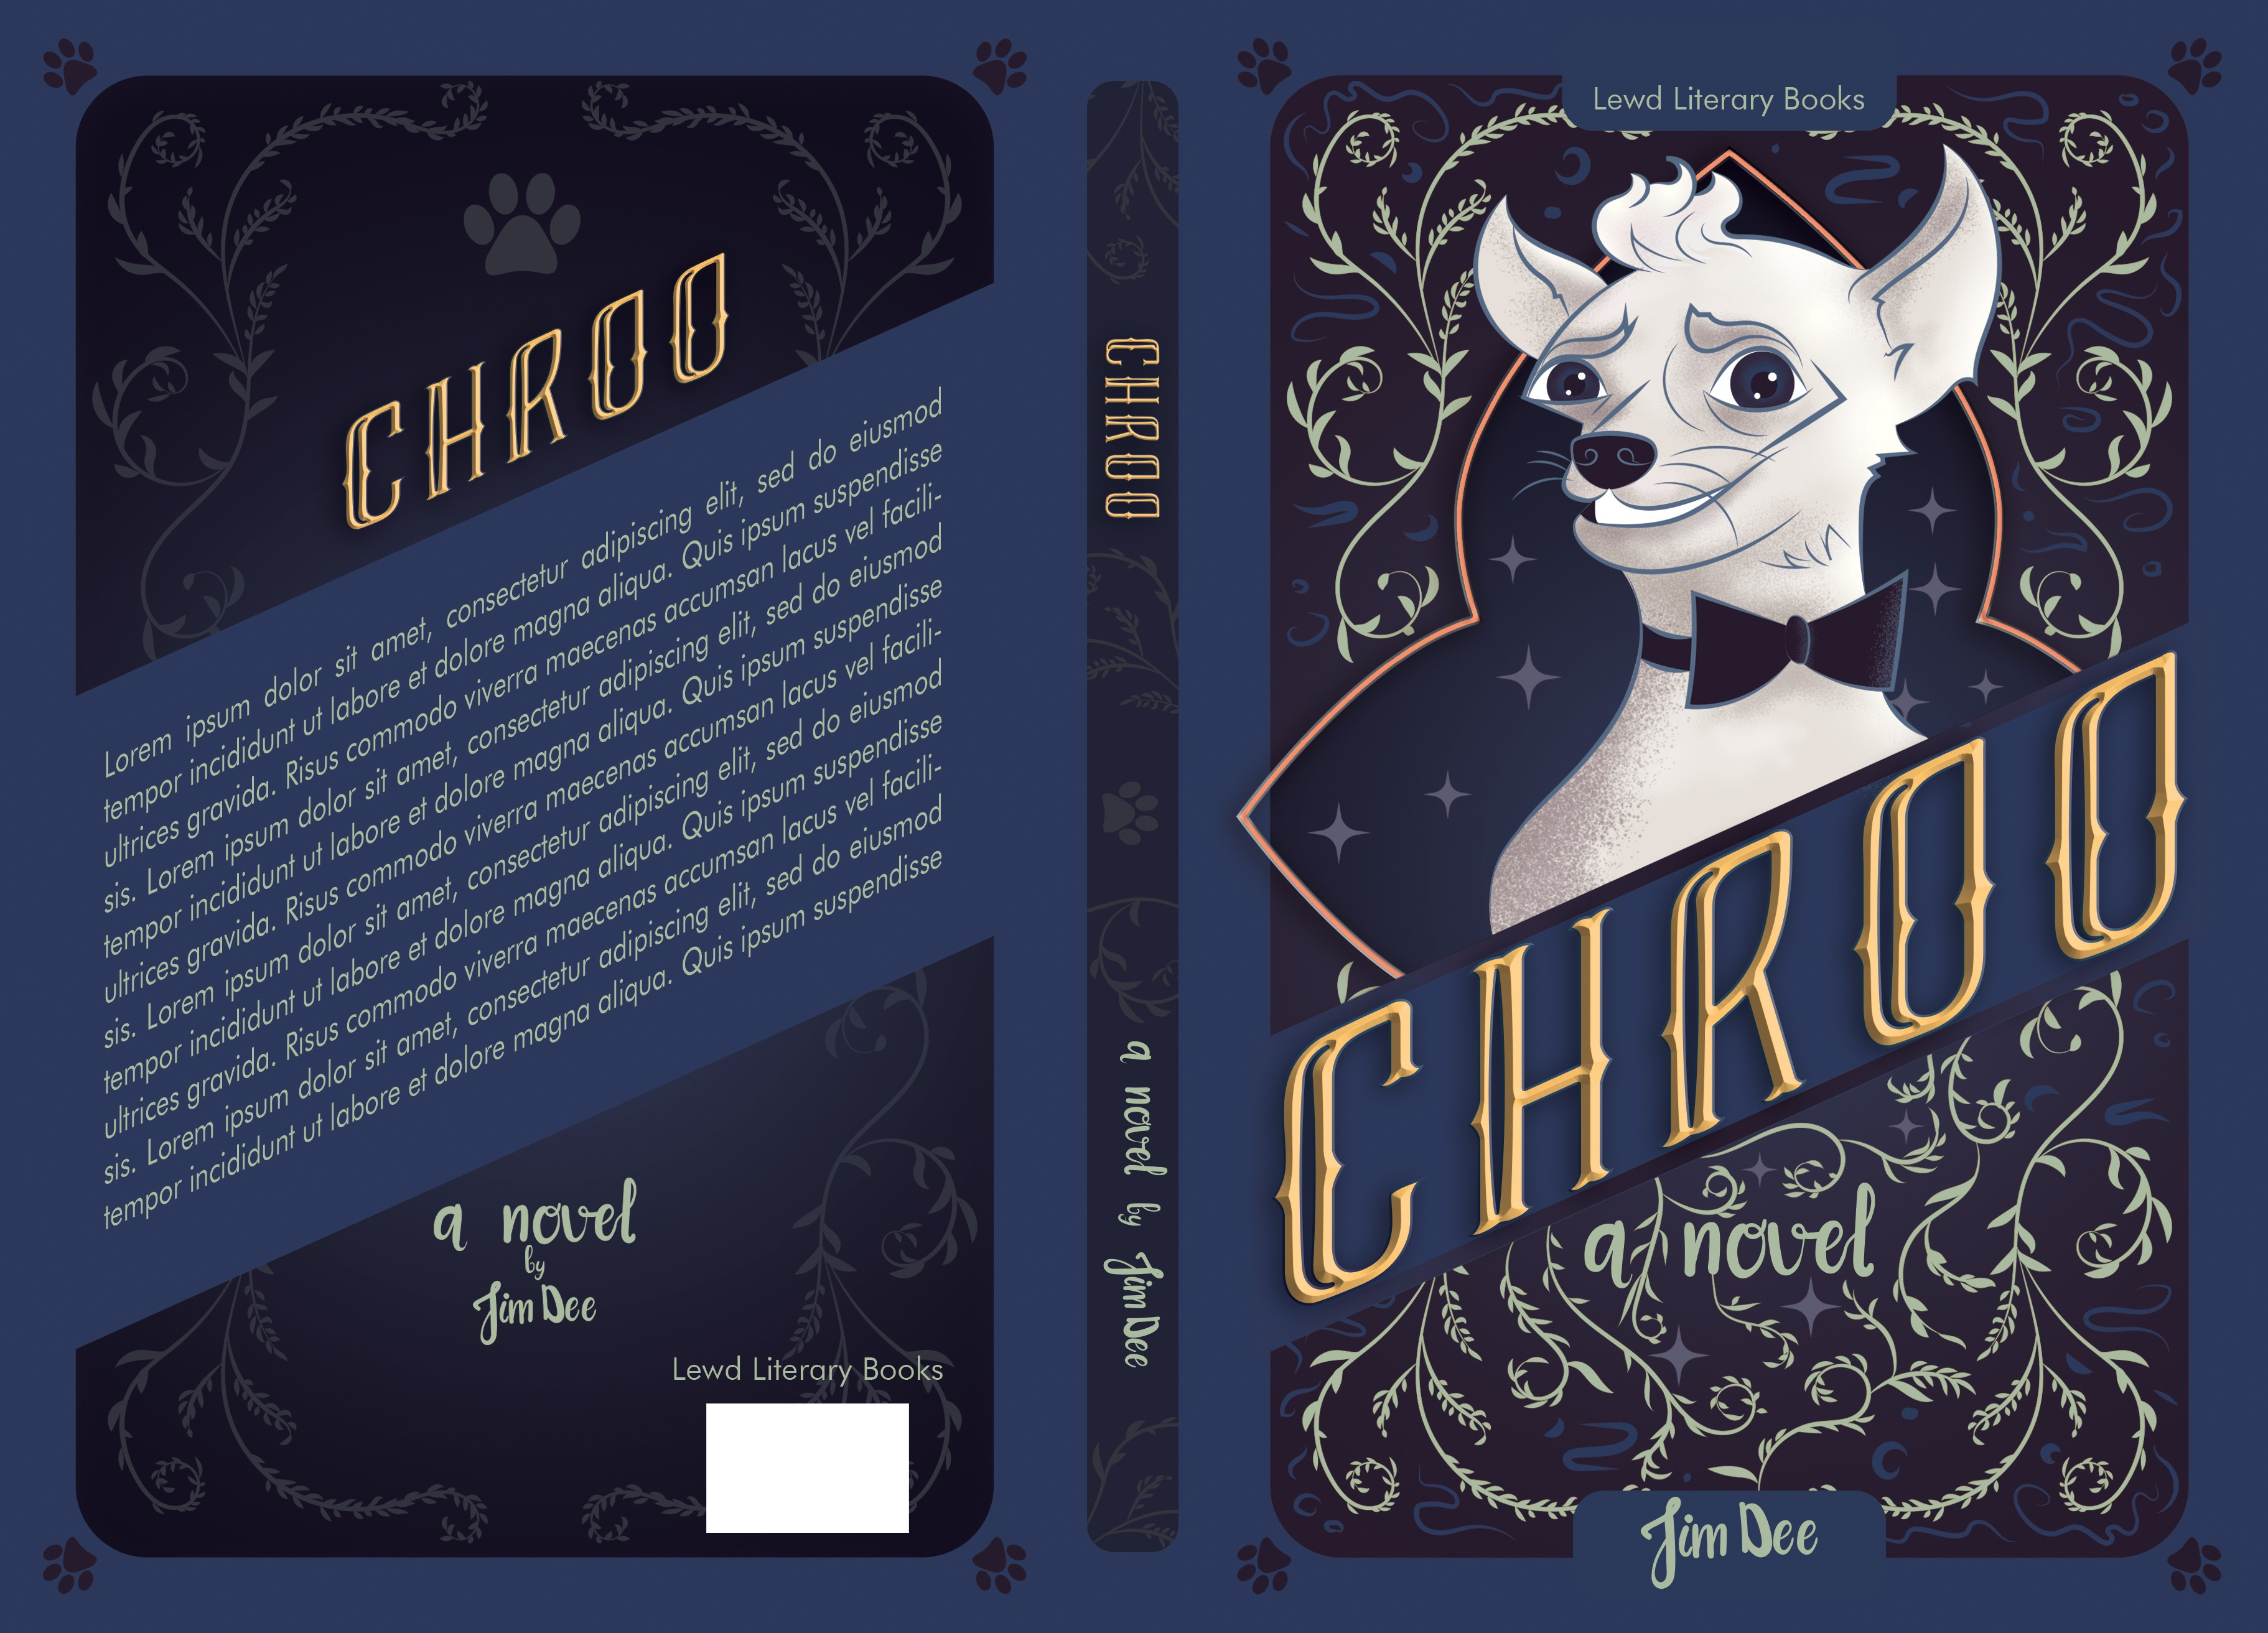 ALERT! Once Upon a Time, the Richest Chihuahua Saved the World. Can you see Chroo's charming face?